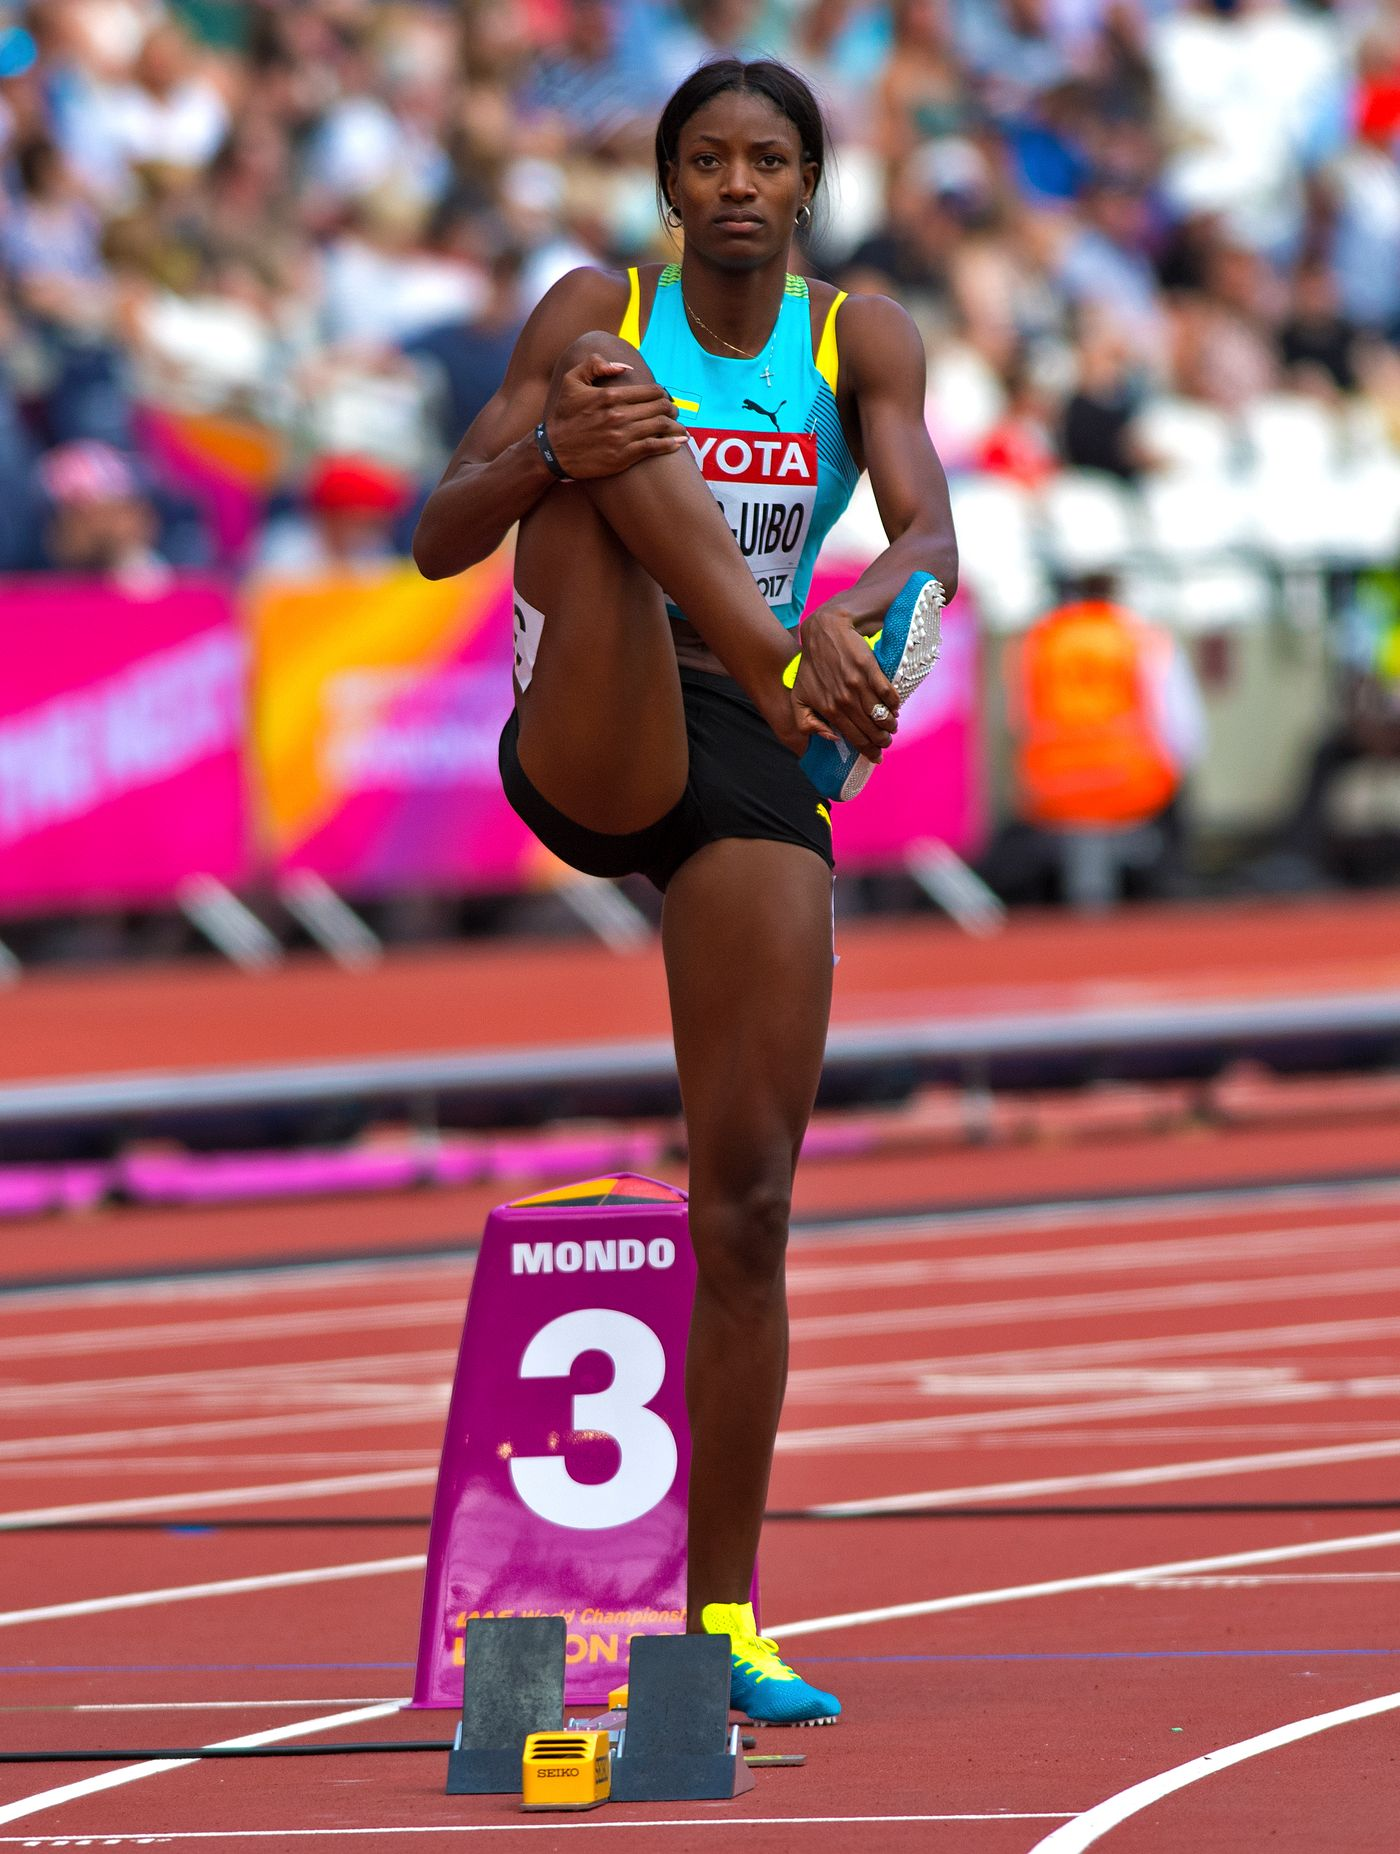 2017 IAAF WC London day 3 shaune miller uibo 400w stretch 2064 jeff cohen photo  .jpg